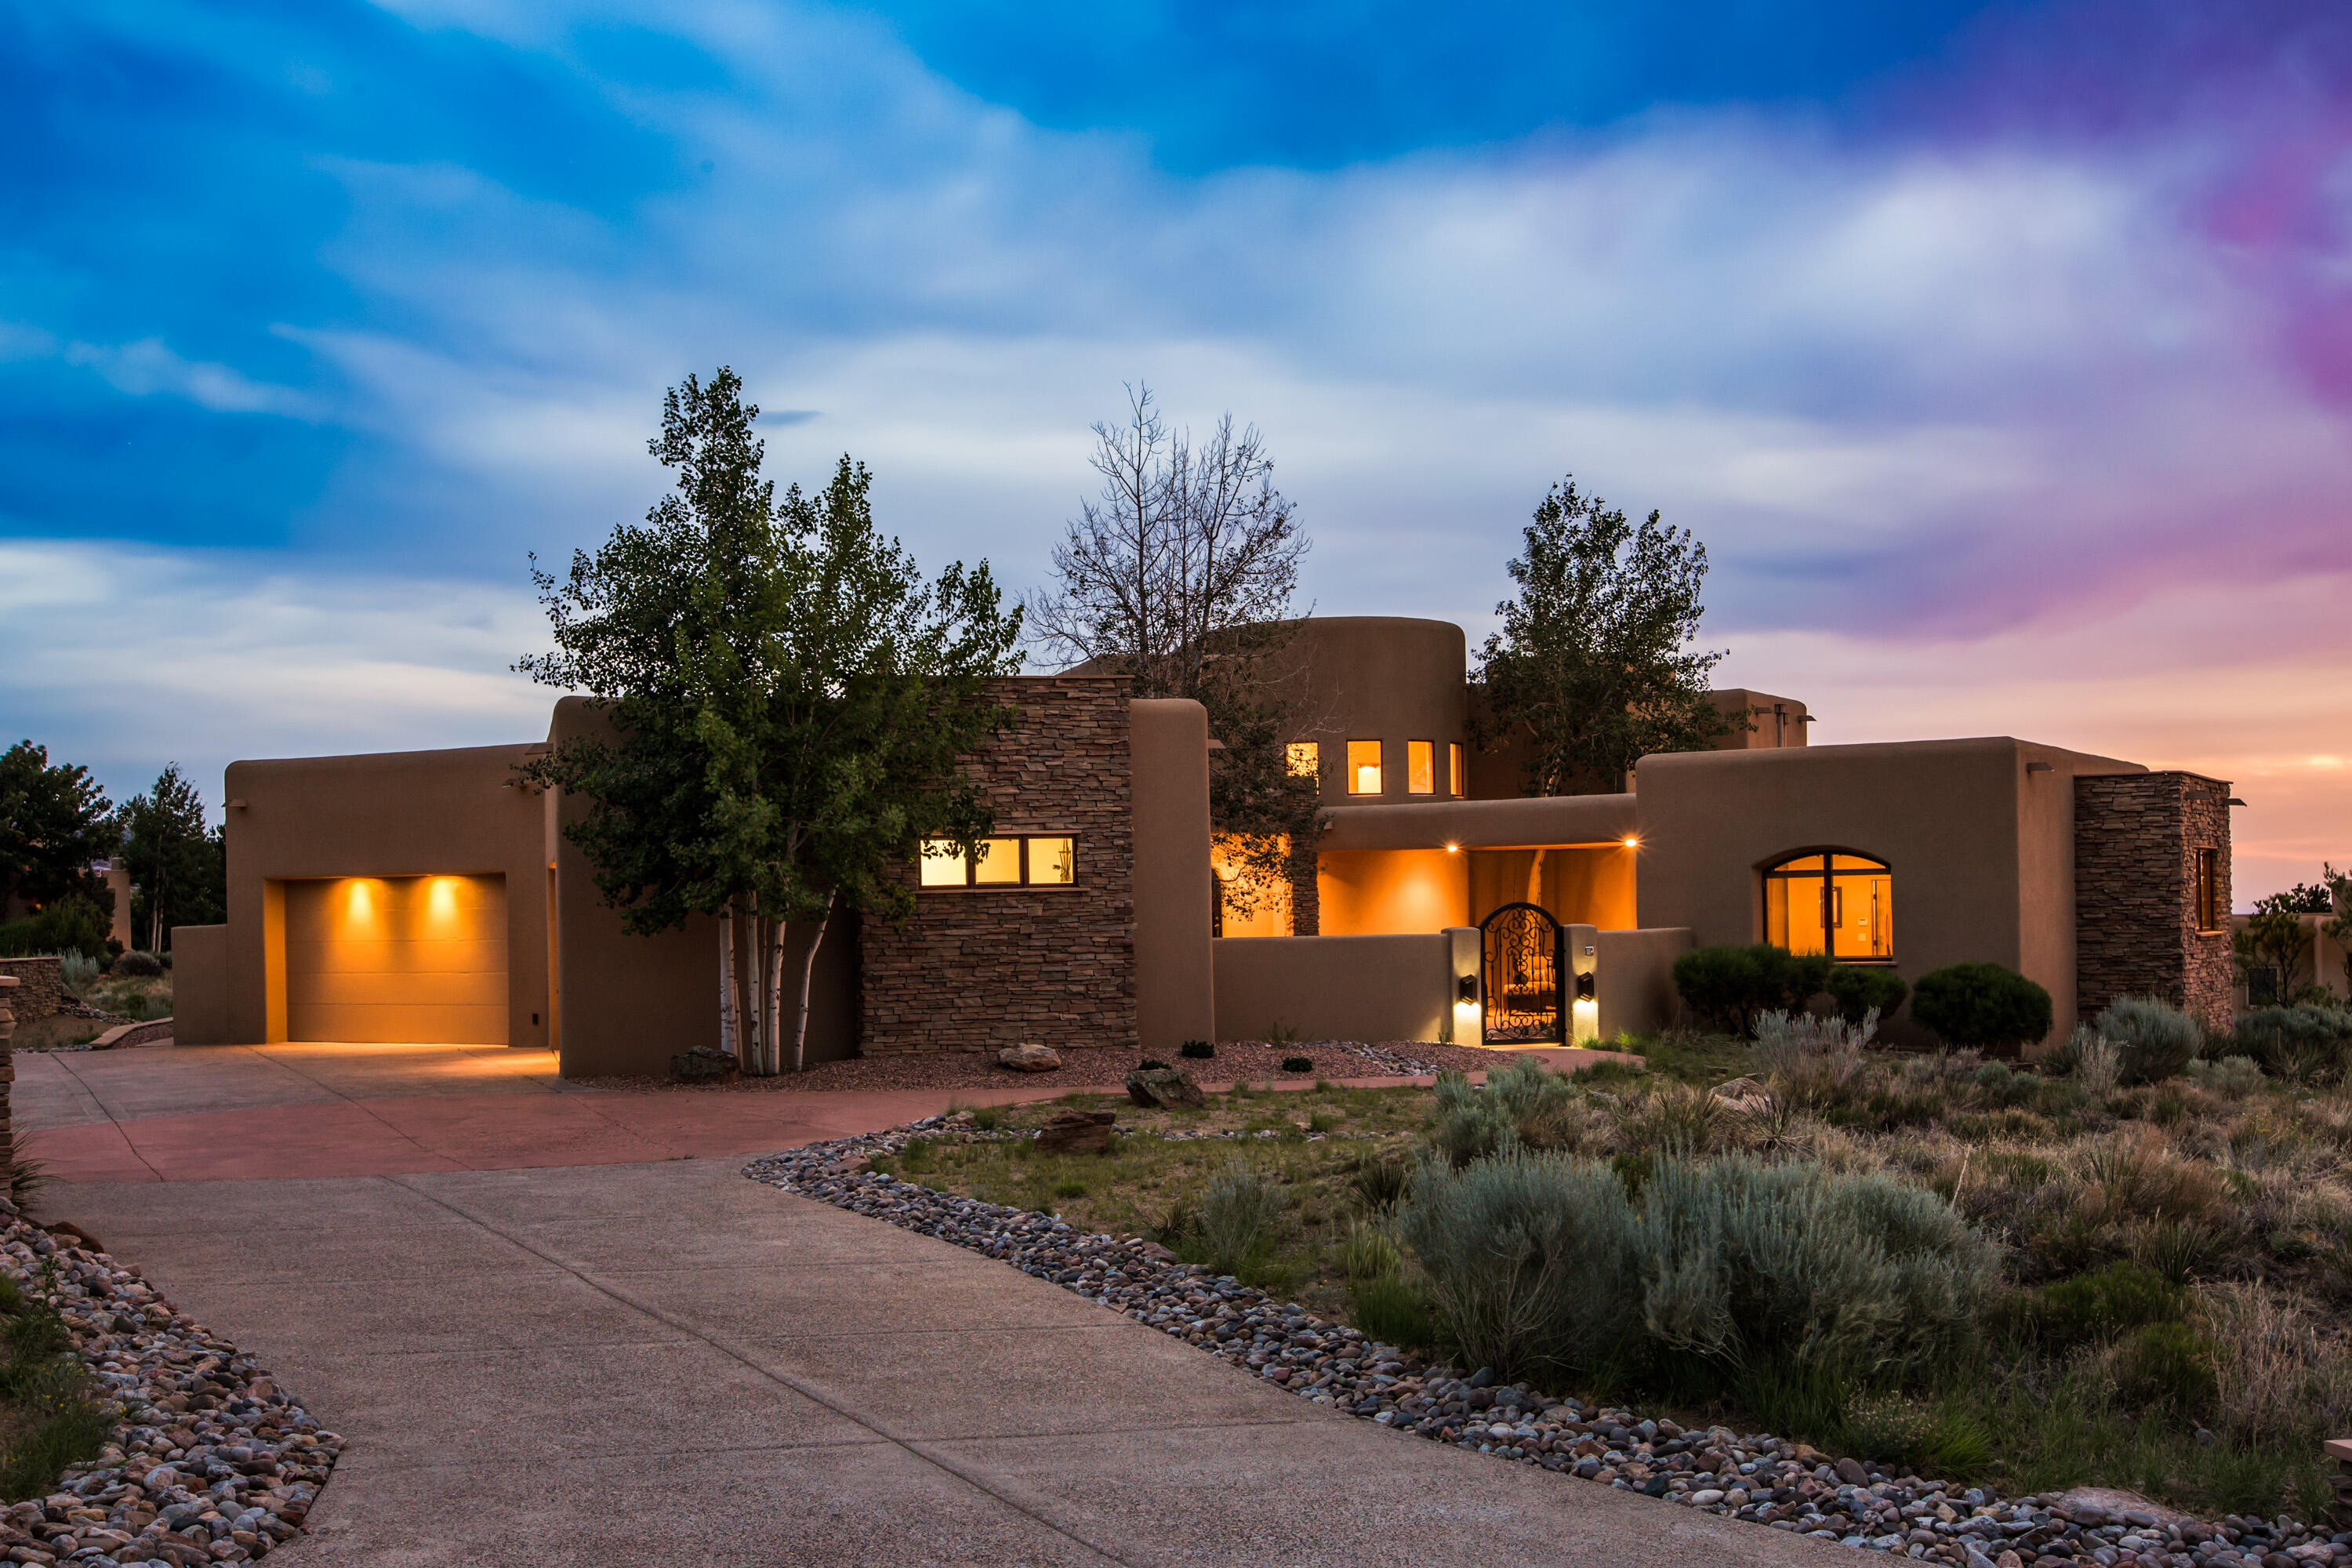 Incredible find in High Desert, Albuquerque's premier master planned community located in the foothills of the Sandia Mountains.  This home has beautiful views in every direction including the mountains, and city lights. Designed for gracious living, this home offers both casual and formal living and dining spaces, a beautiful kitchen with handcrafted cabinetry and Wolf/ Subzero appliances, a gym, theater room, a wine tasting room, detached fully appointed Casita w/ kitchenette, and a beautiful courtyard with a sparkling heated pool with a ramada. High end finishes include elegant tile flooring, 2 wood burning fireplaces with stone surrounds, alder cabinetry, solid wood doors, and beautifully positioned wood windows. Hard to find 4 car garage with additional storage features an epoxy floor